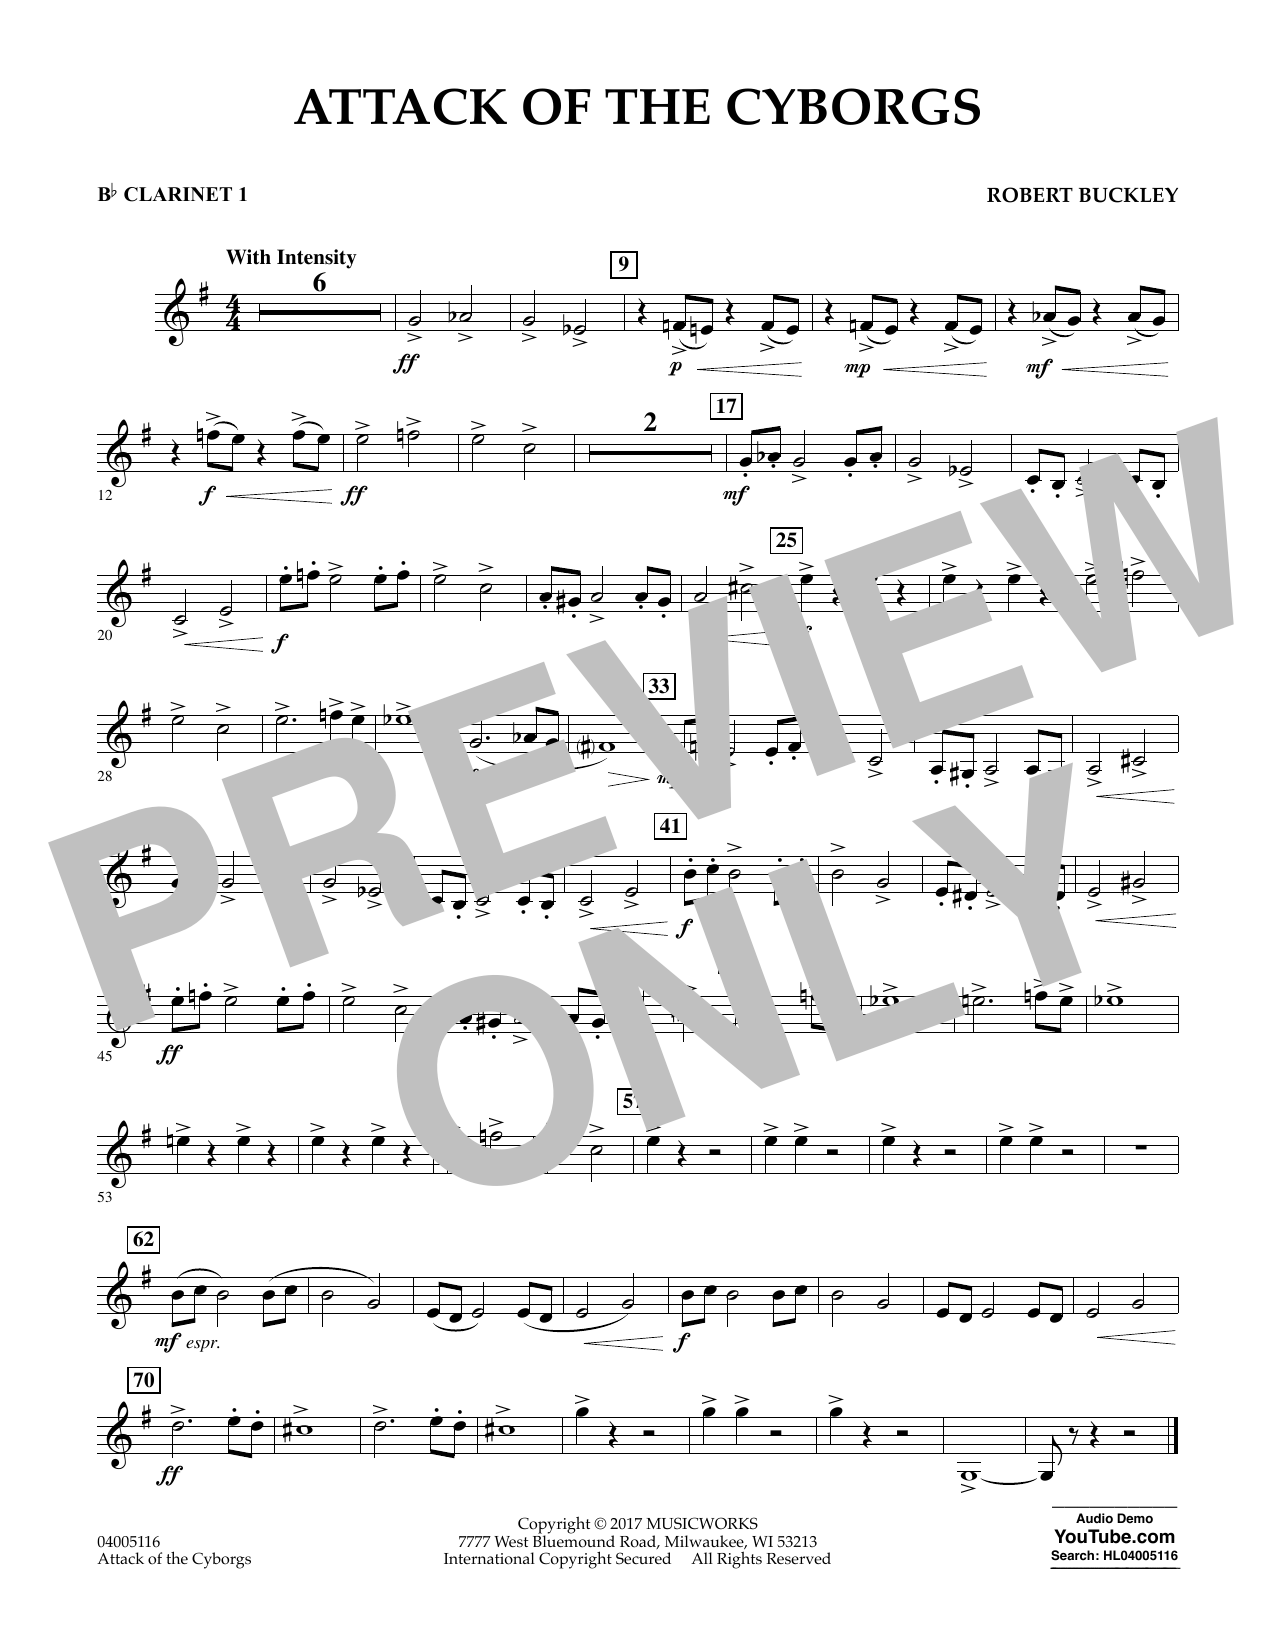 Robert Buckley Attack of the Cyborgs - Bb Clarinet 1 sheet music notes and chords. Download Printable PDF.